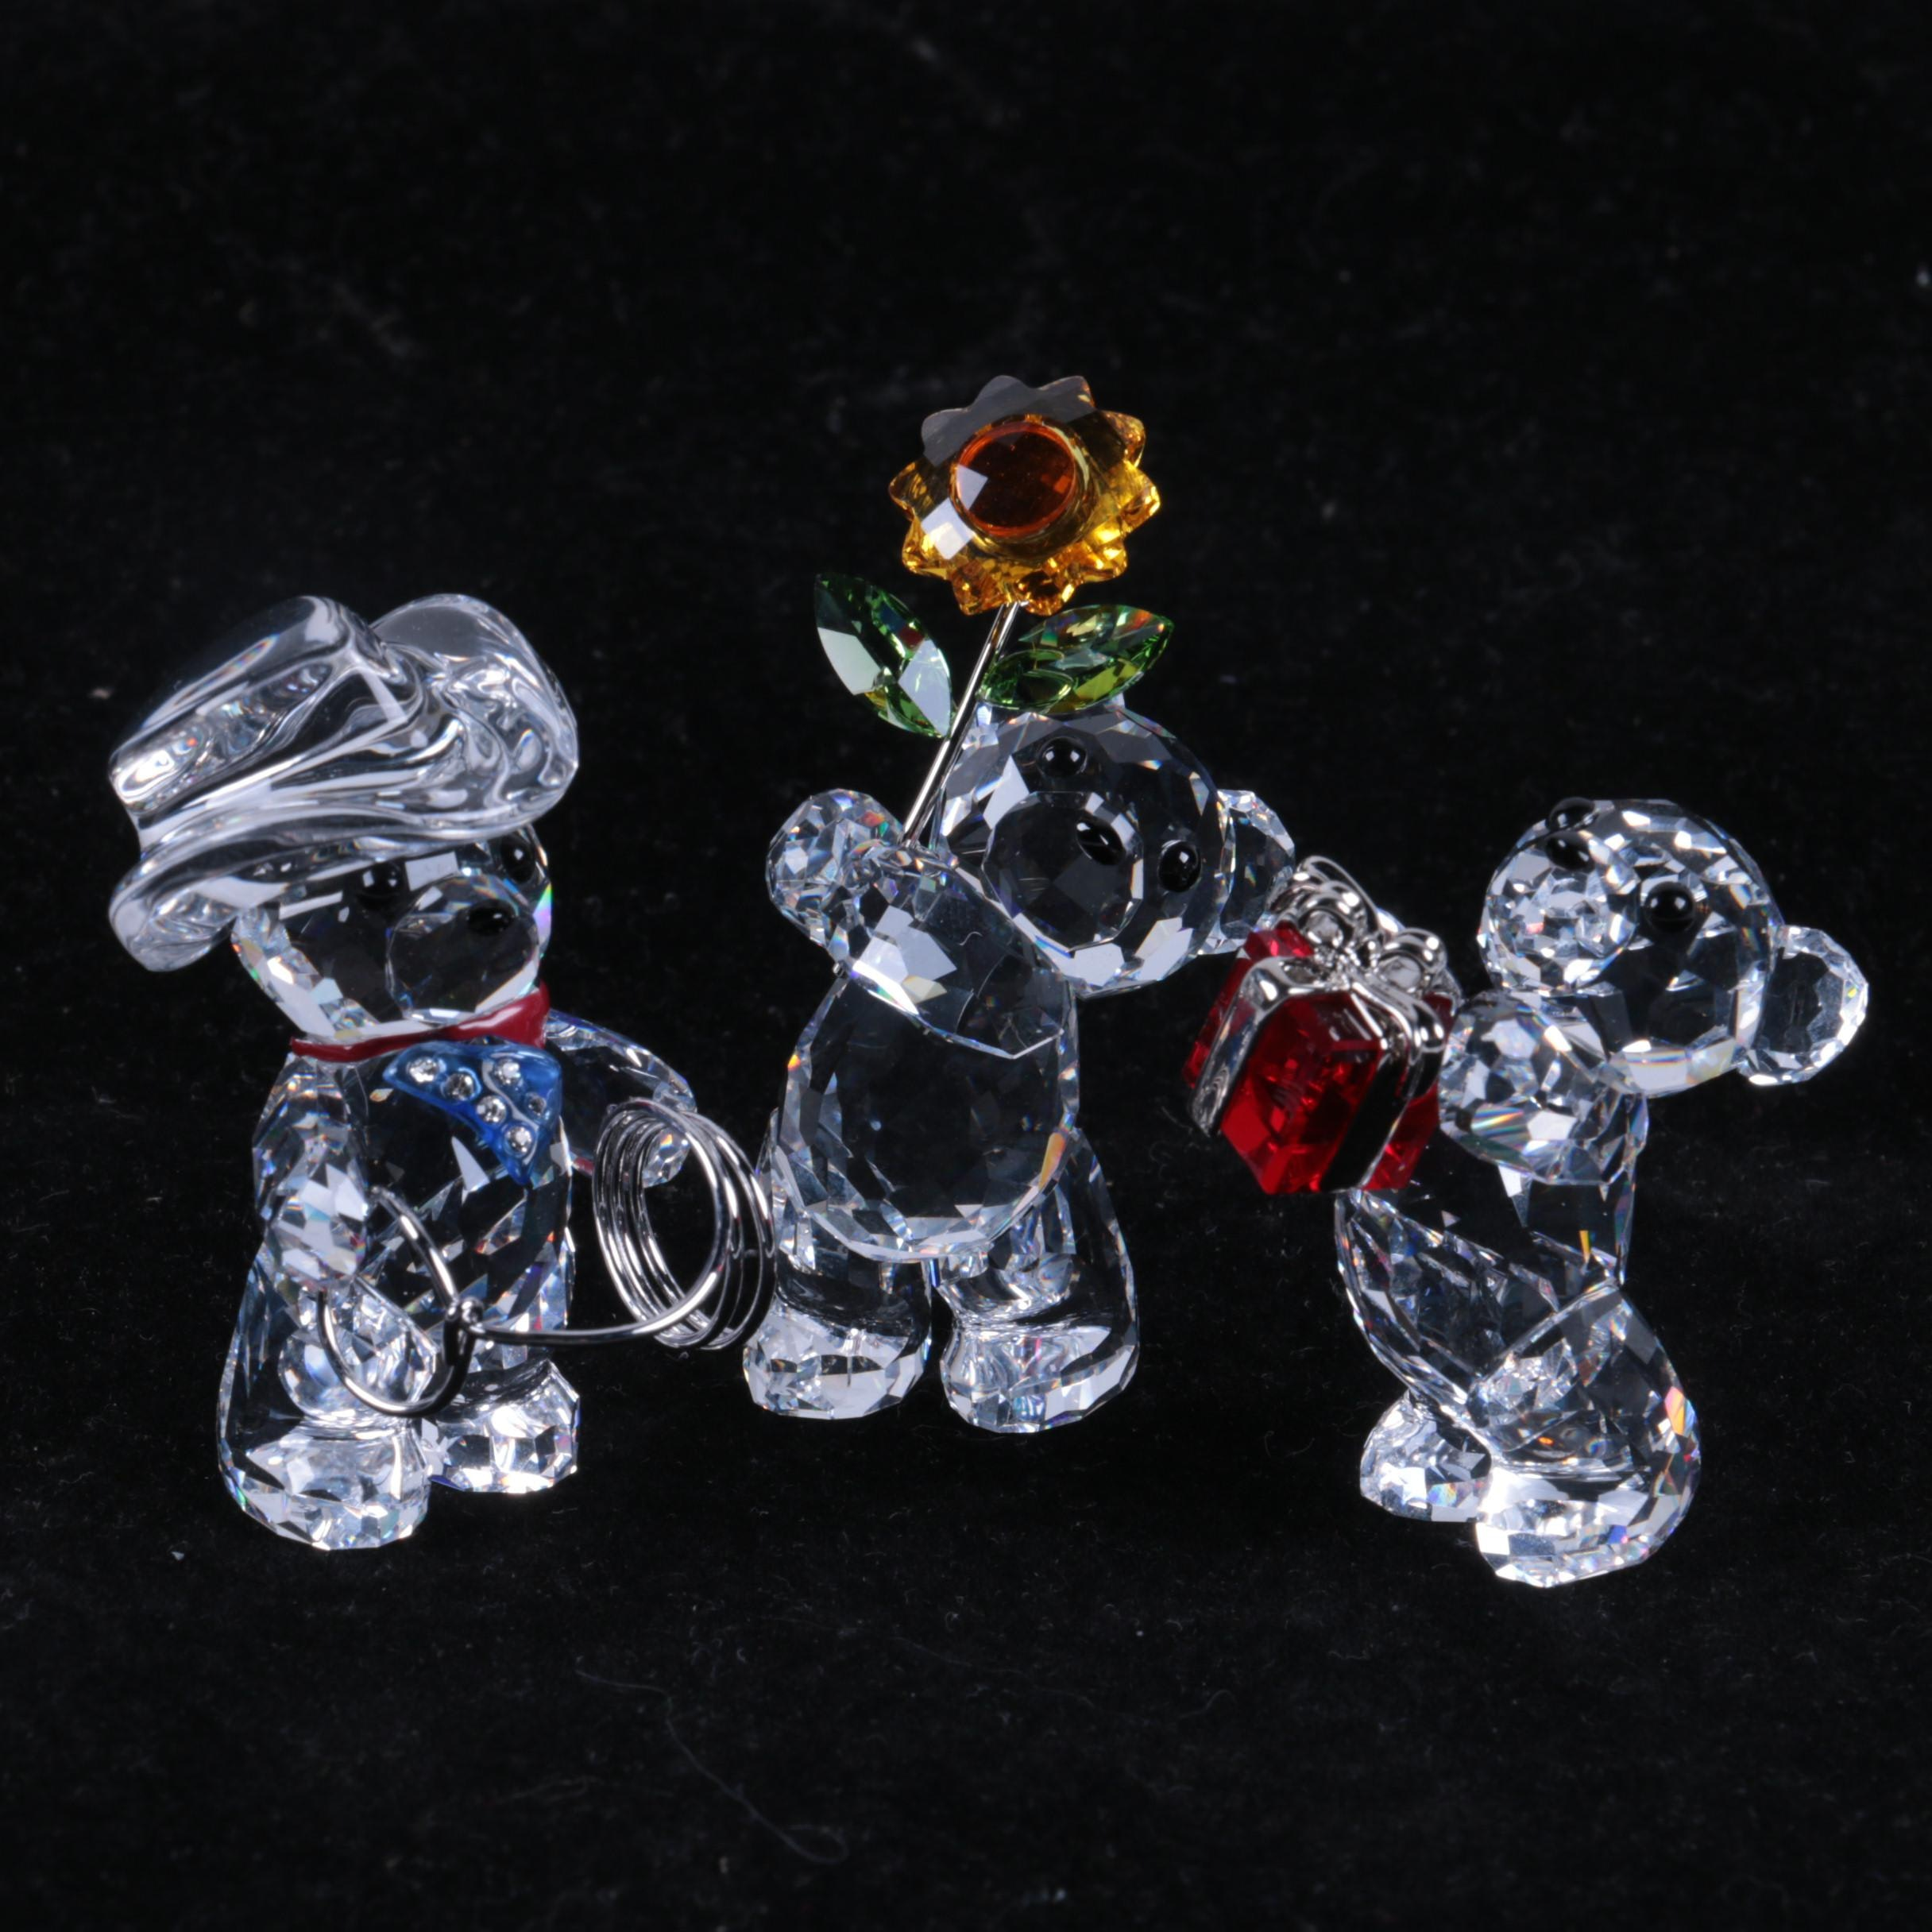 Collection of Swarovski Crystal Bear Figurines